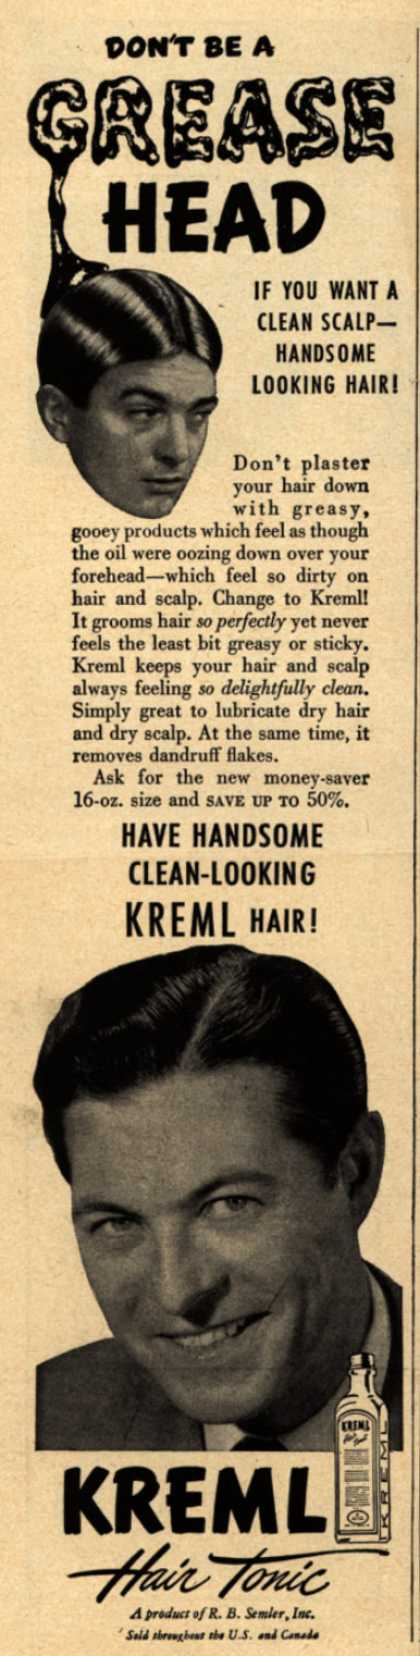 "Kreml's hair tonic – ""Not on my Sofa"" (1944)"